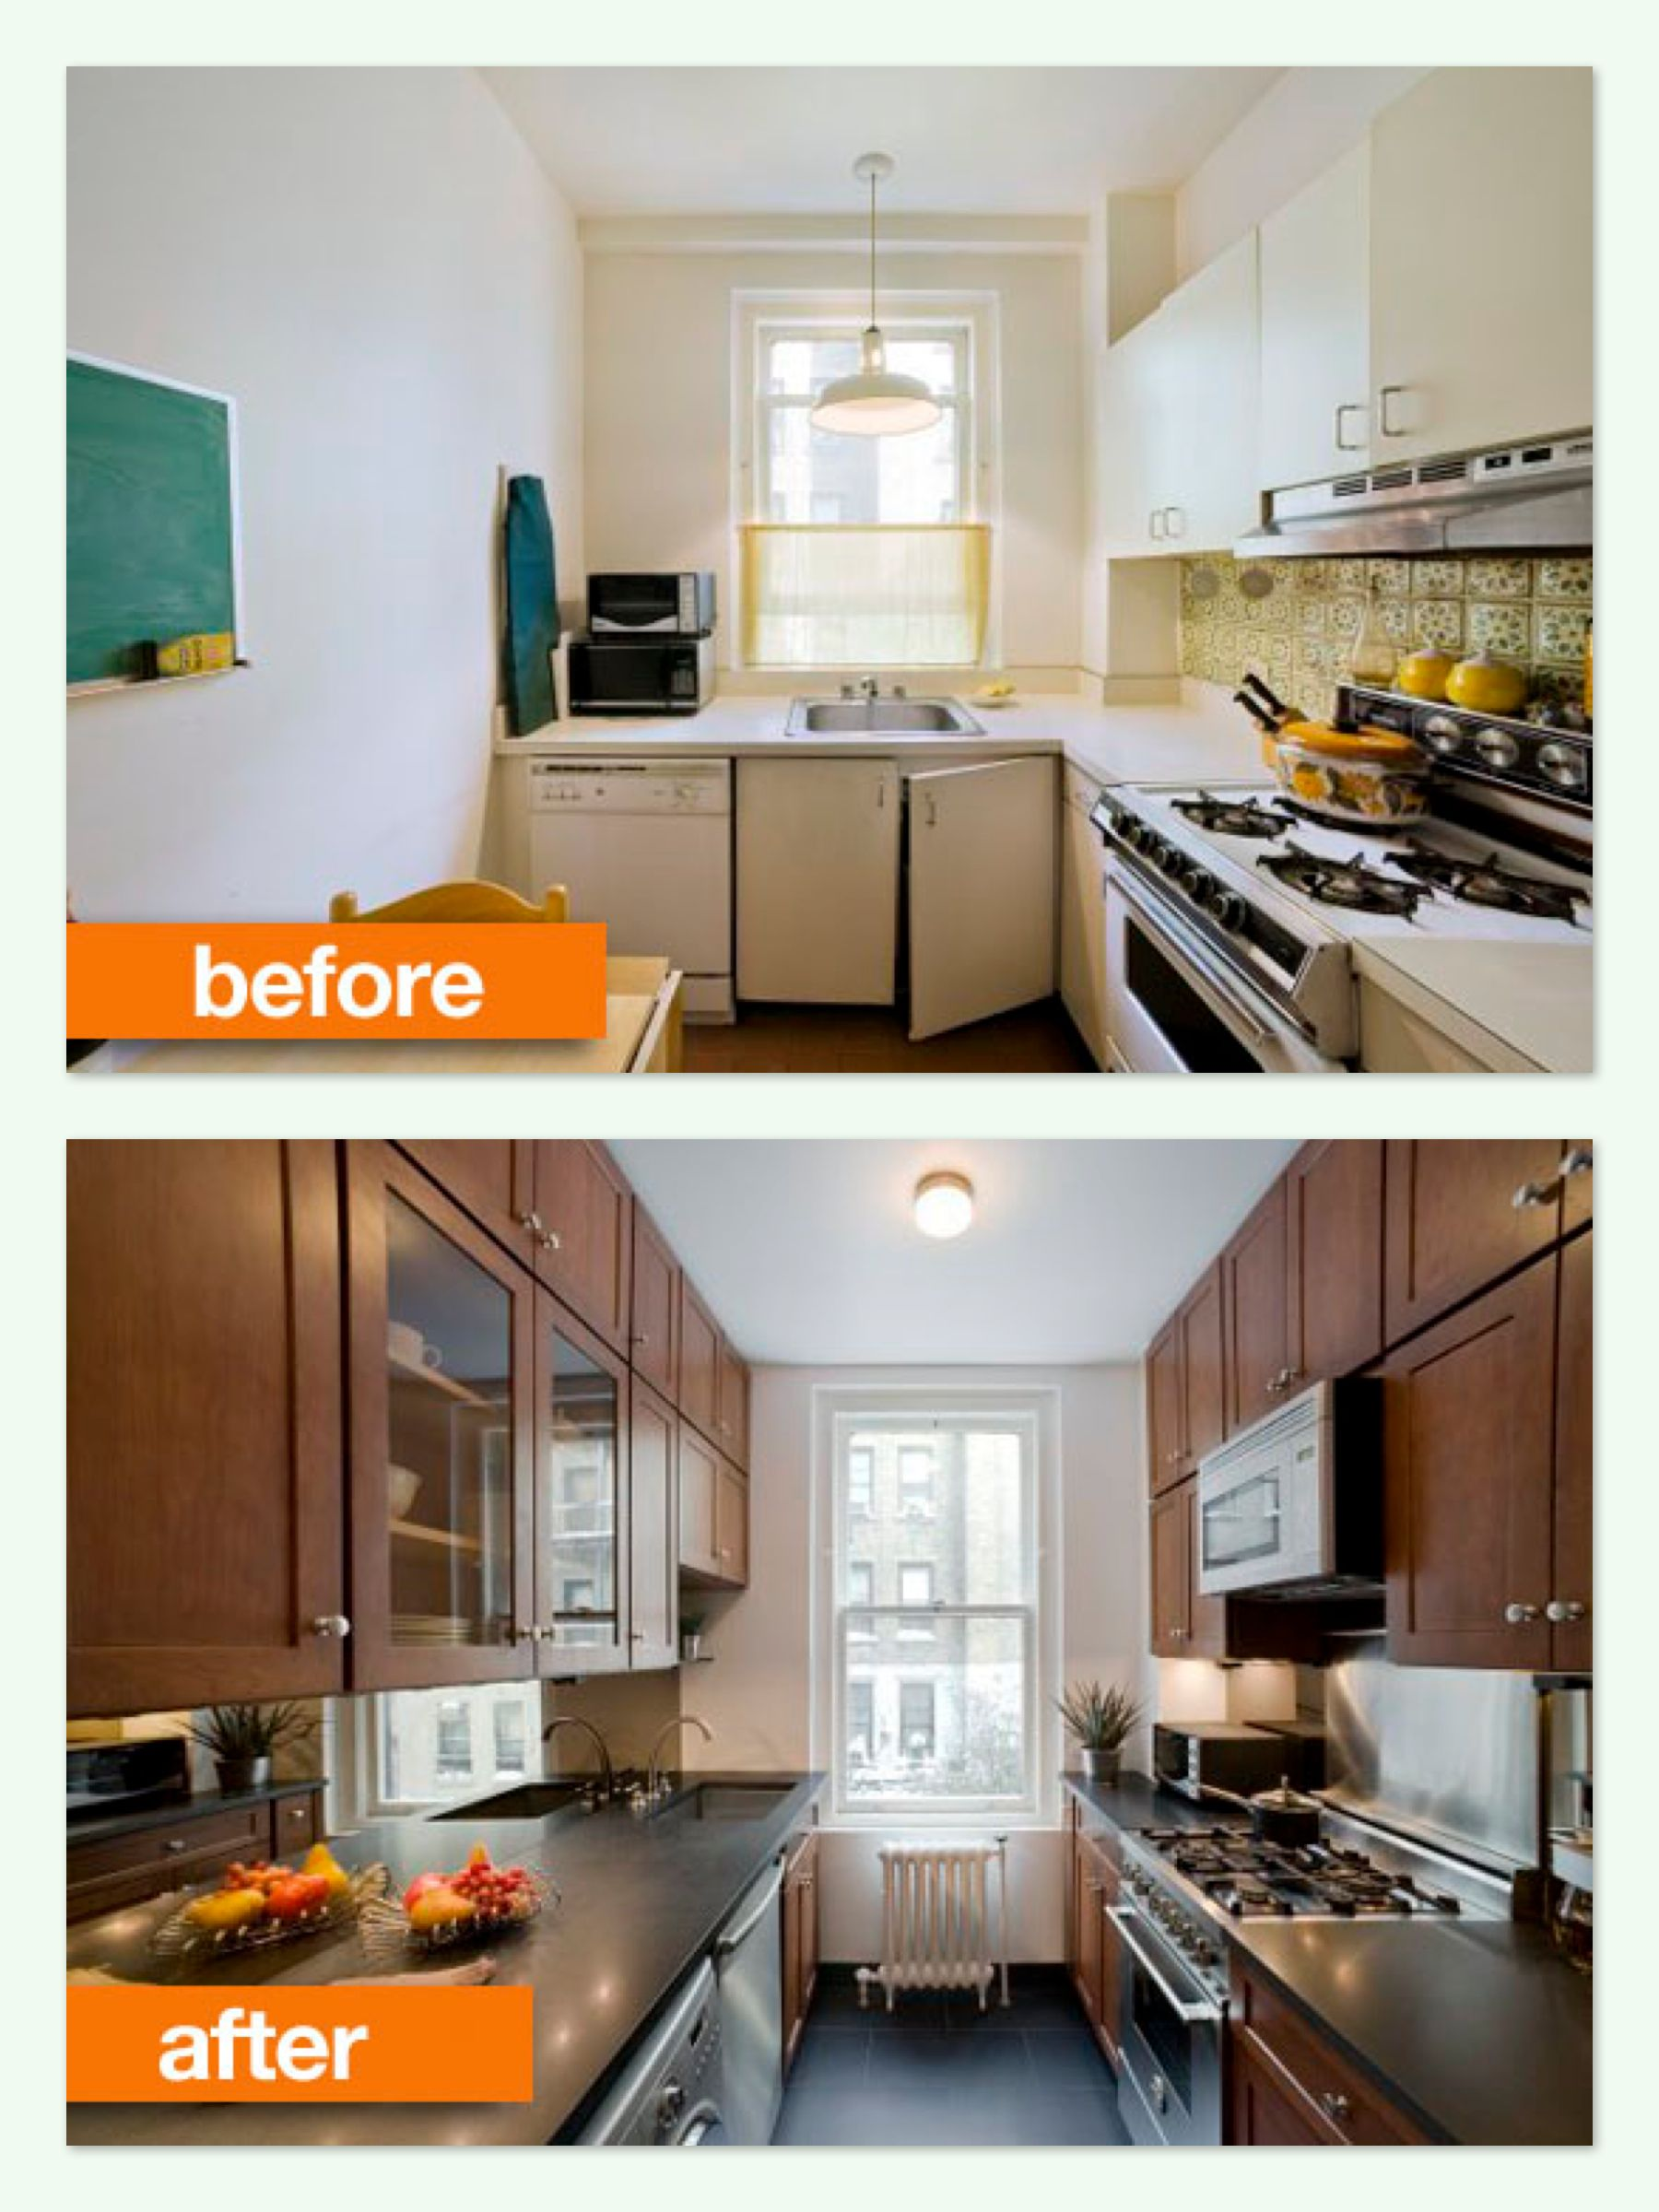 Galley Kitchen Renovation Before And After before & after - stellar job on renovating a small outdated